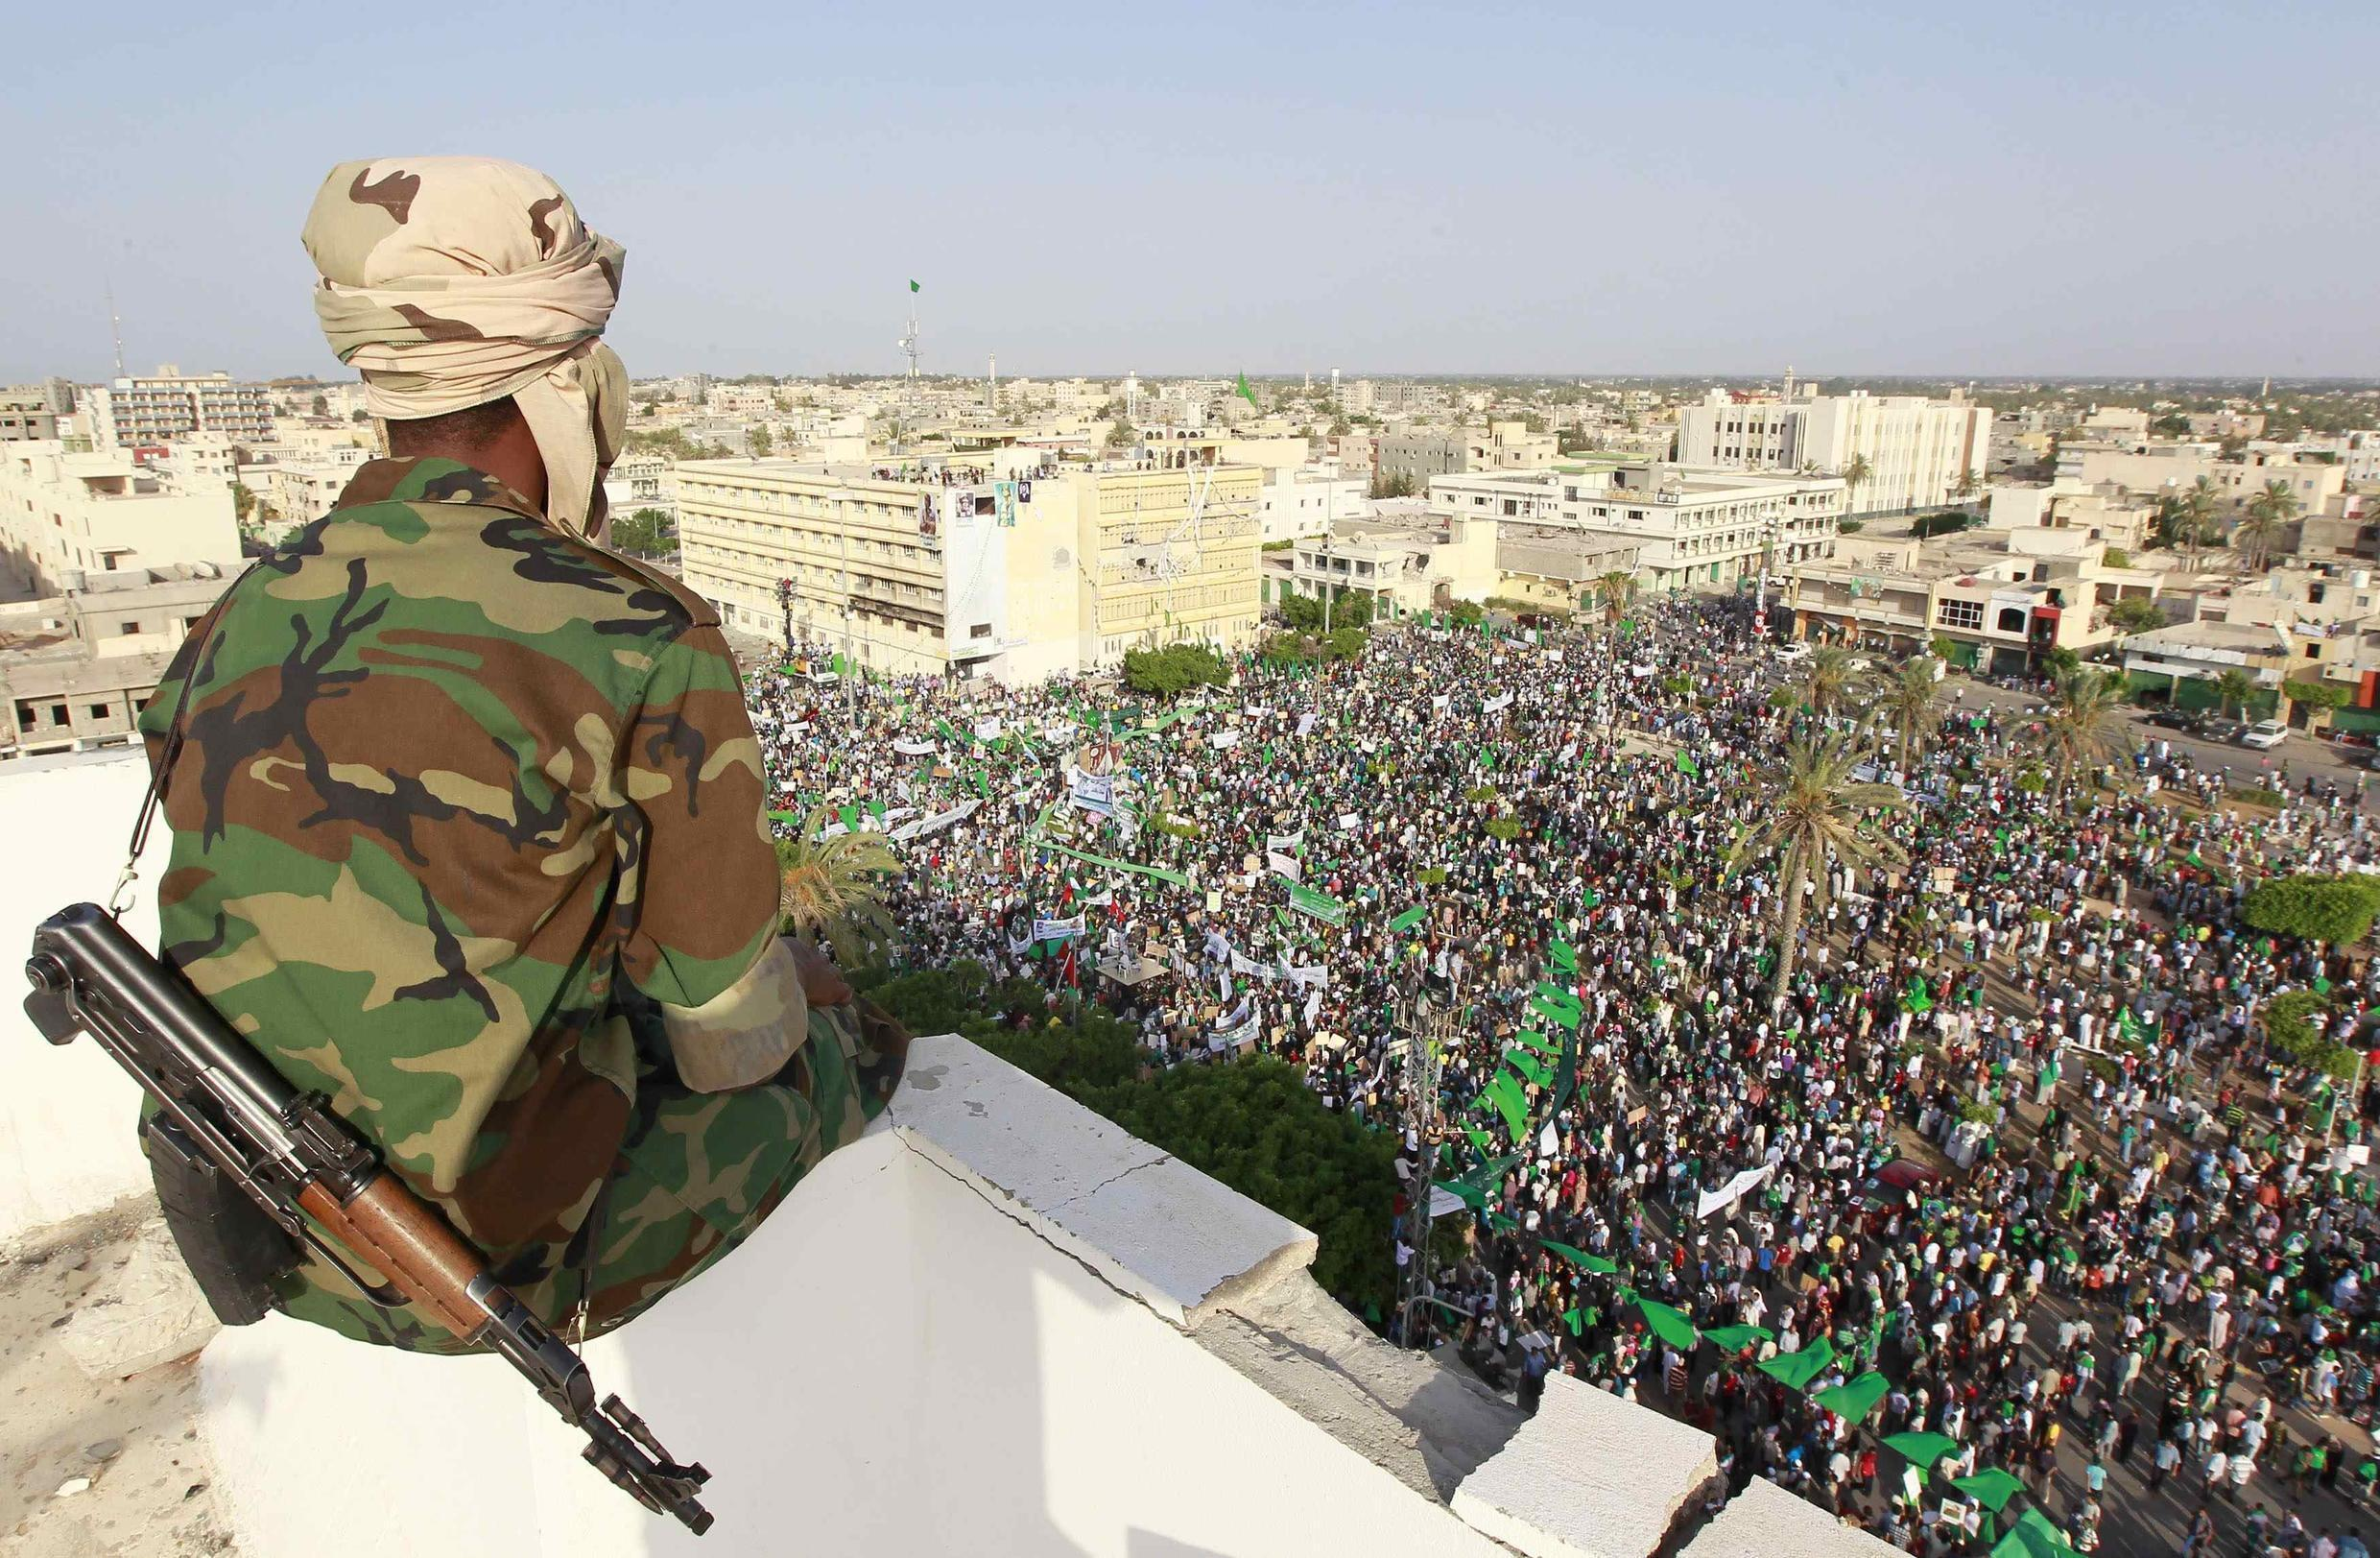 Kadhafi tells supporters in Zawiyah he will never leave his ancestor's land